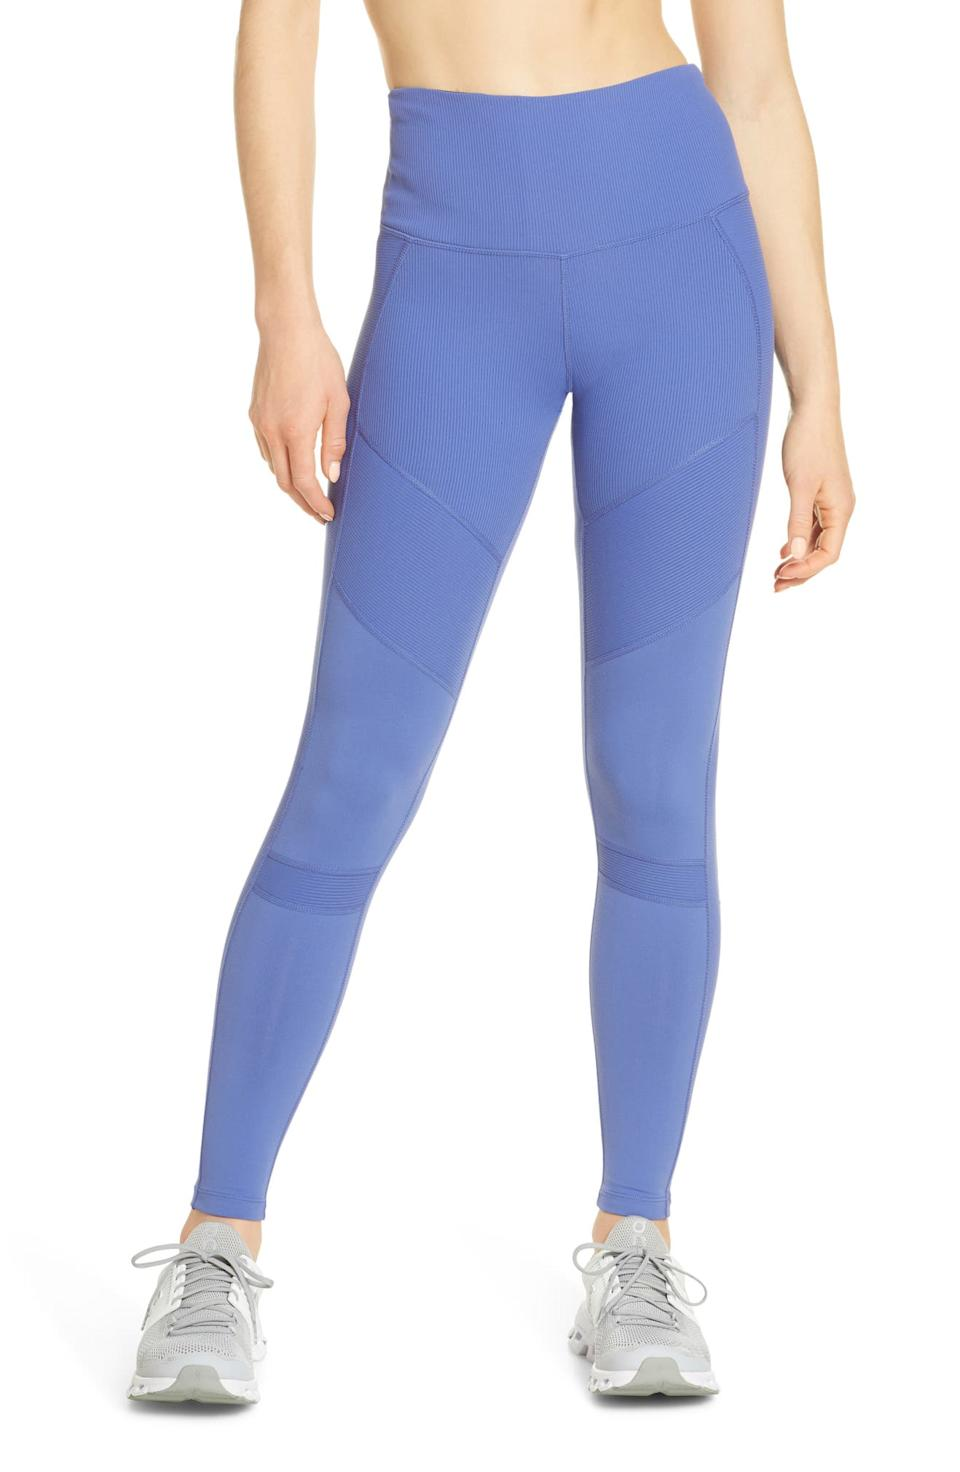 Zella Moto Ribbed High Waist Ankle Leggings. Image via Nordstrom.